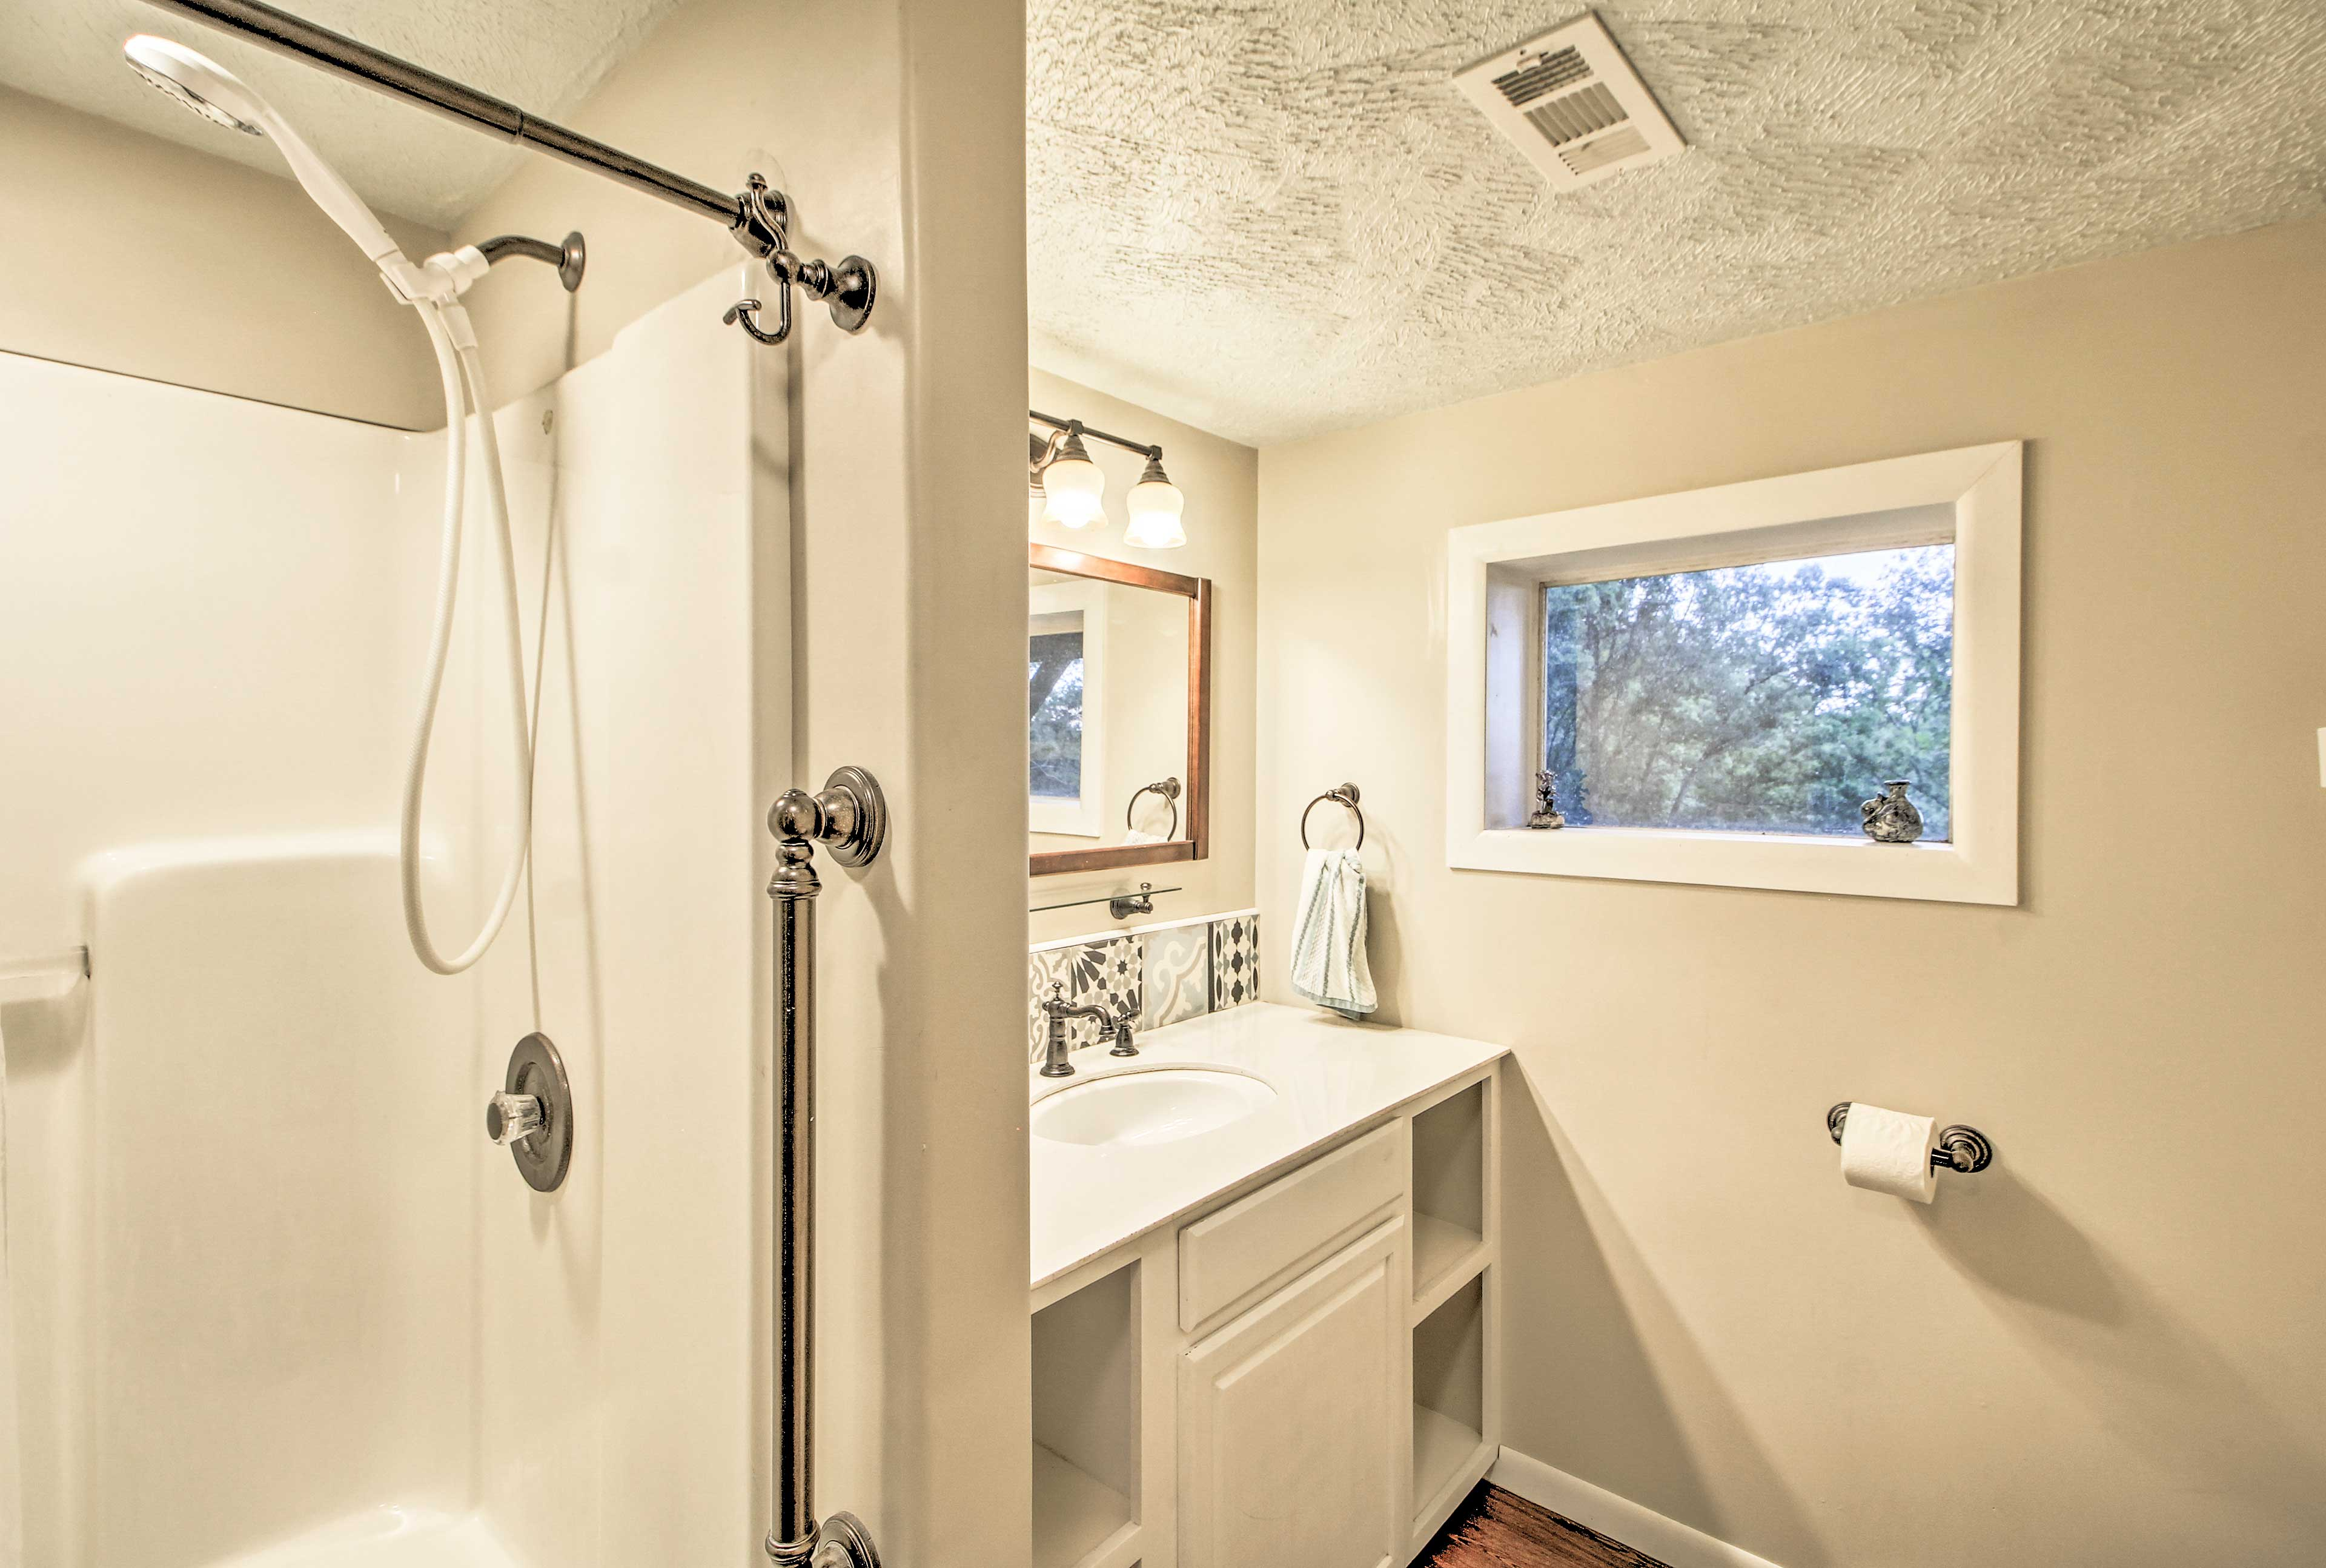 The downstairs bathroom is equipped with grab bars.